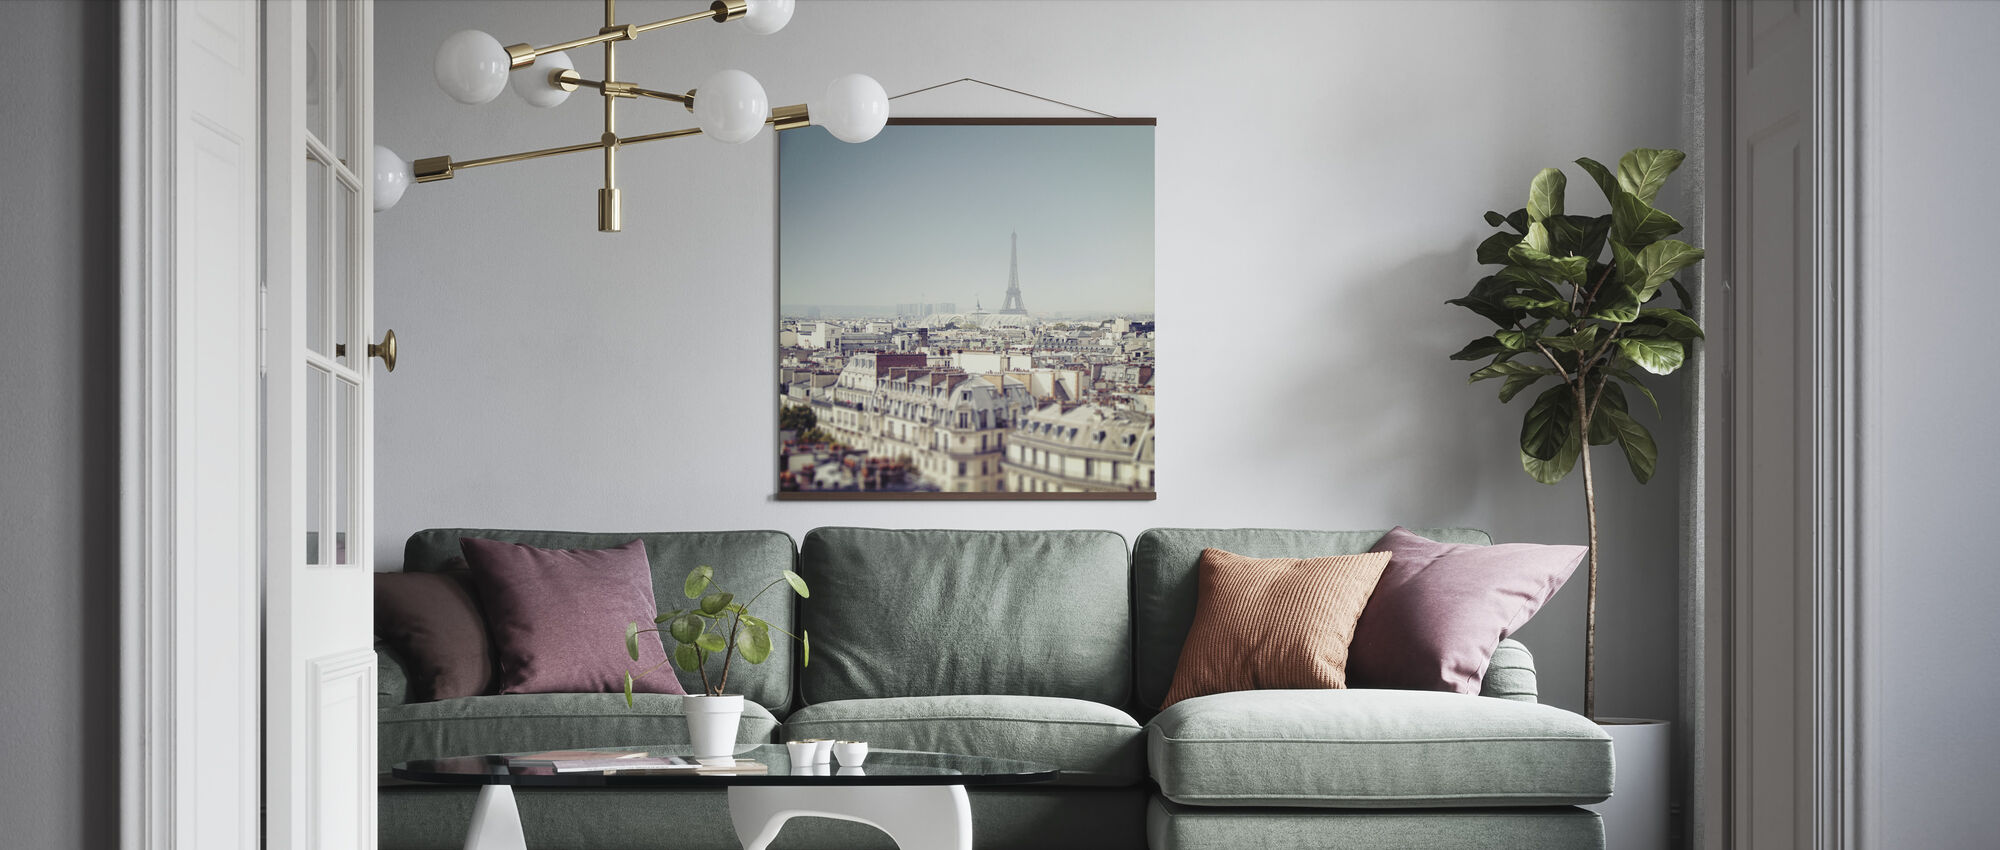 Paris Moments VI - Poster - Living Room